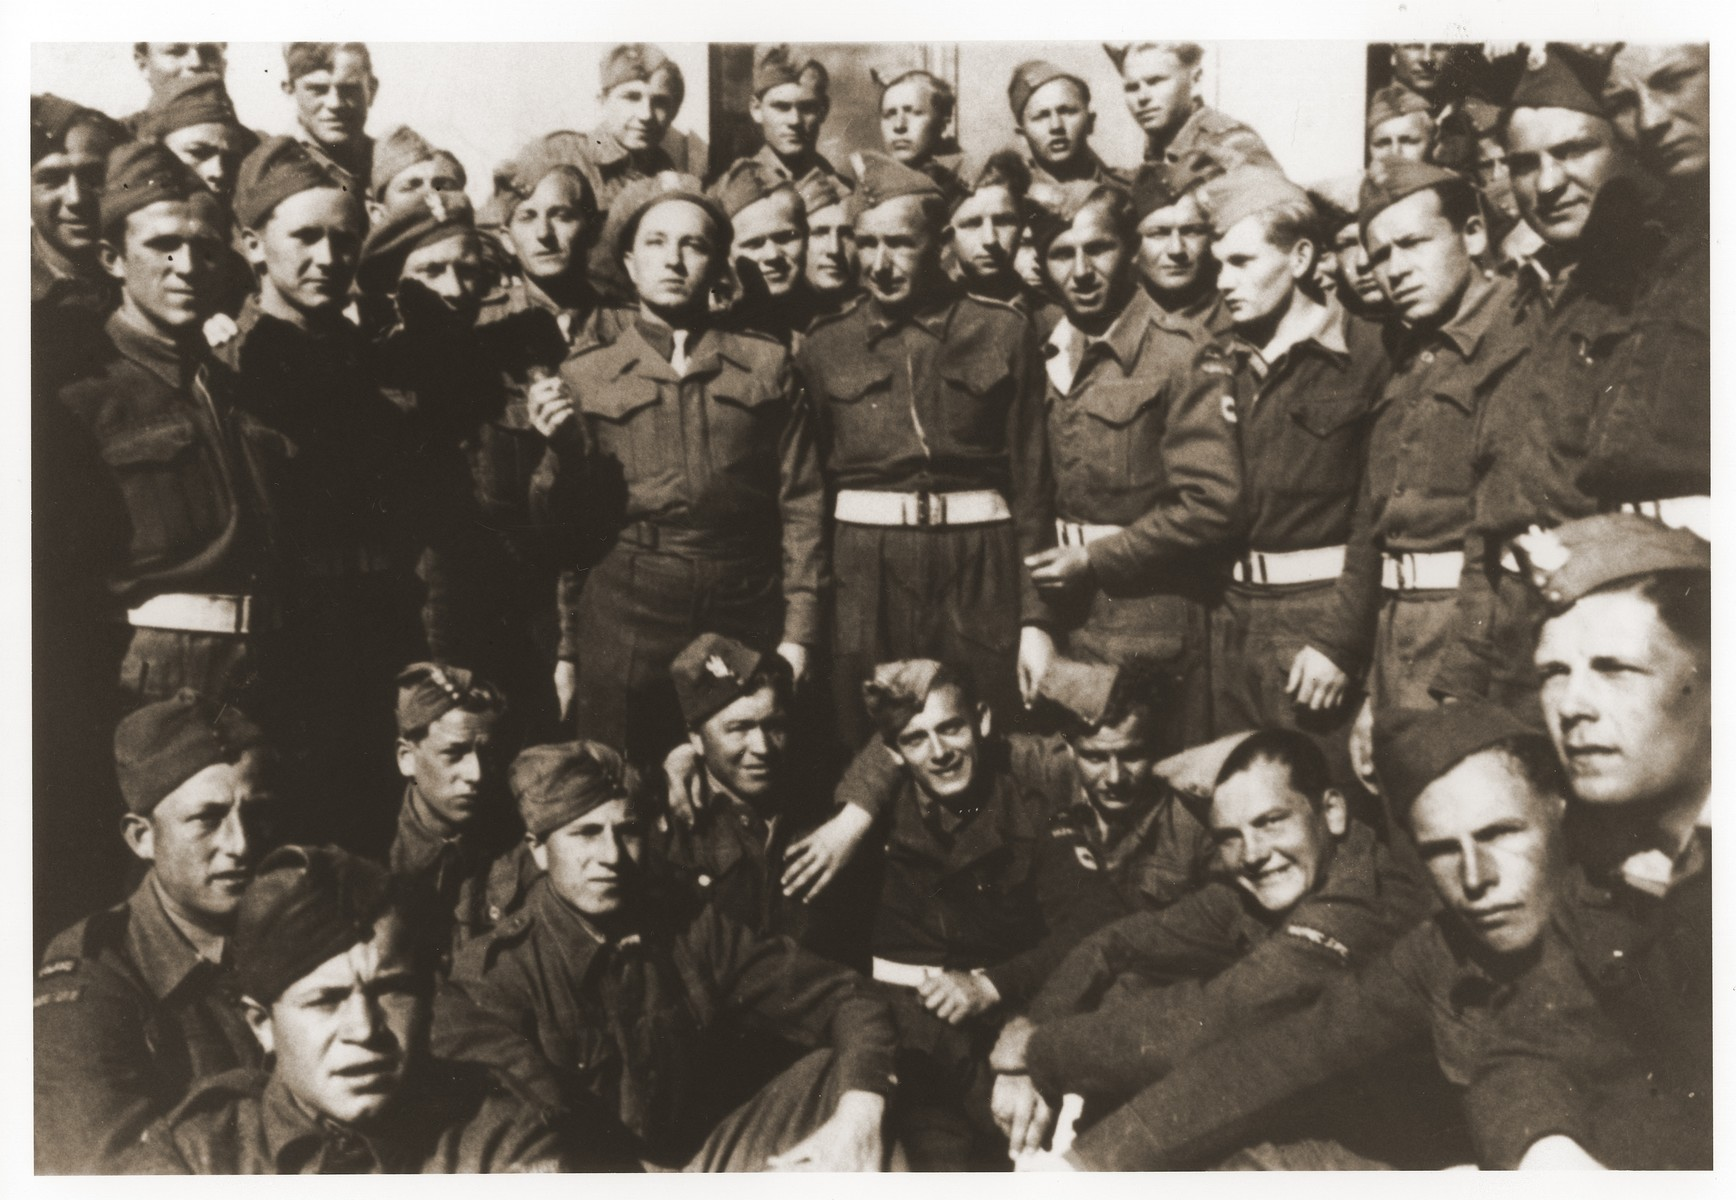 Group portrait of a unit of the Polish Home Army [Armia Krajowa].   Among those pictured is Chaim Lingalka, the donor's cousin.  Lingalka joined the AK under the alias Adam Sarna.  His unit was sent to Italy where it joined forces with the British Army.  Also pictured is Ewald Kroll (second row, third from the right) who joined the AK after first having served as  a Volksdeutsch in the Wehrmacht.